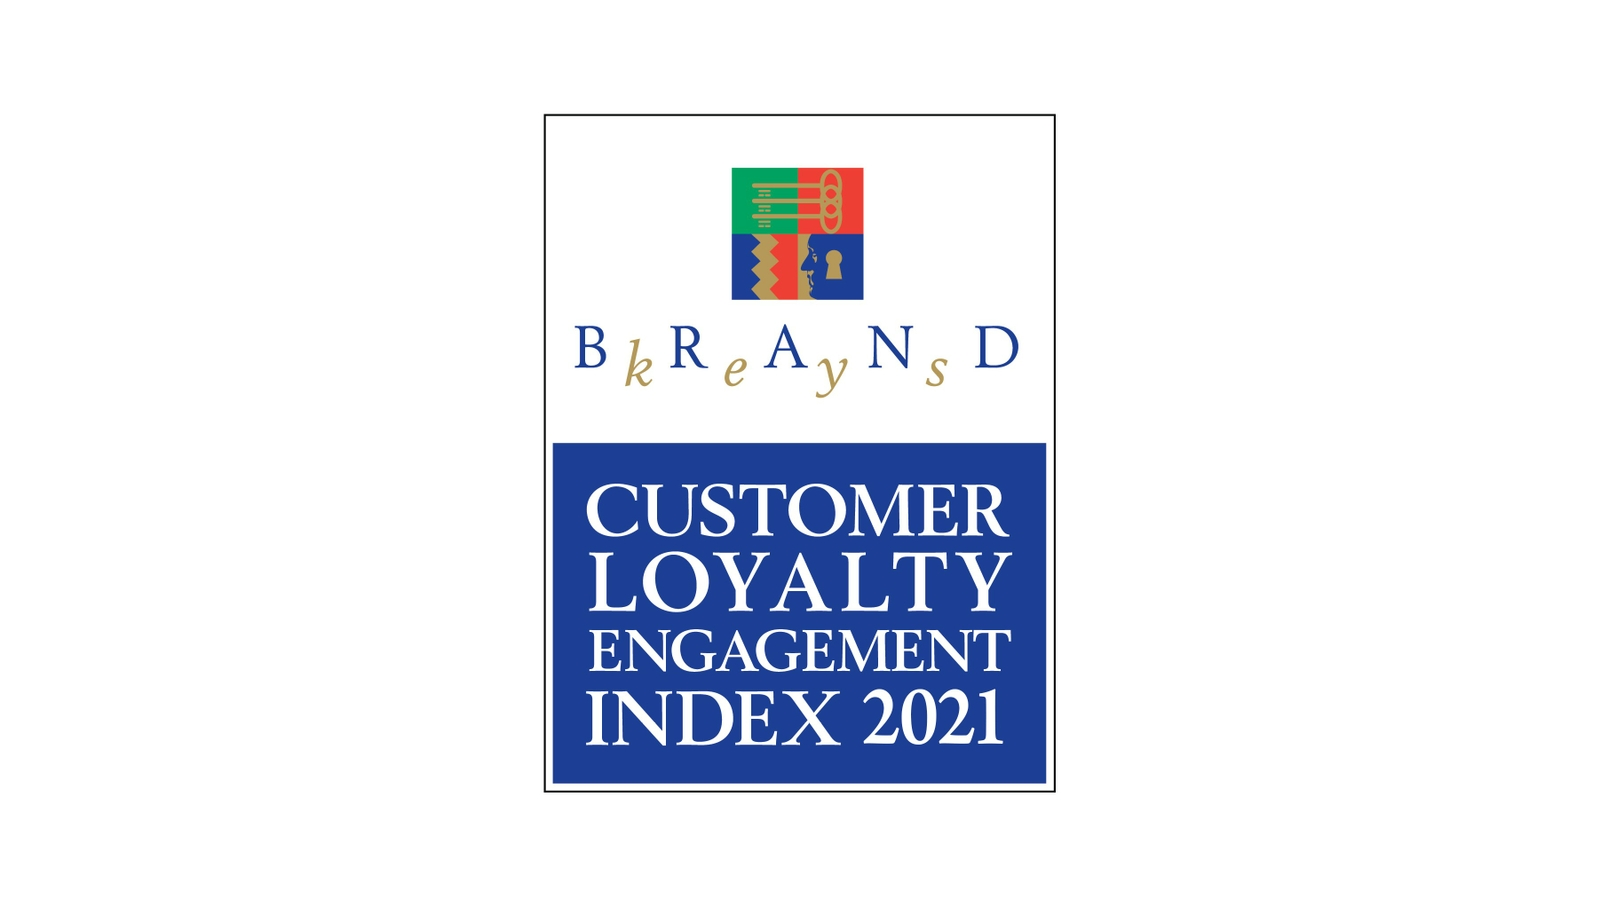 Dunkin' Once Again Named #1 Brand for Customer Loyalty